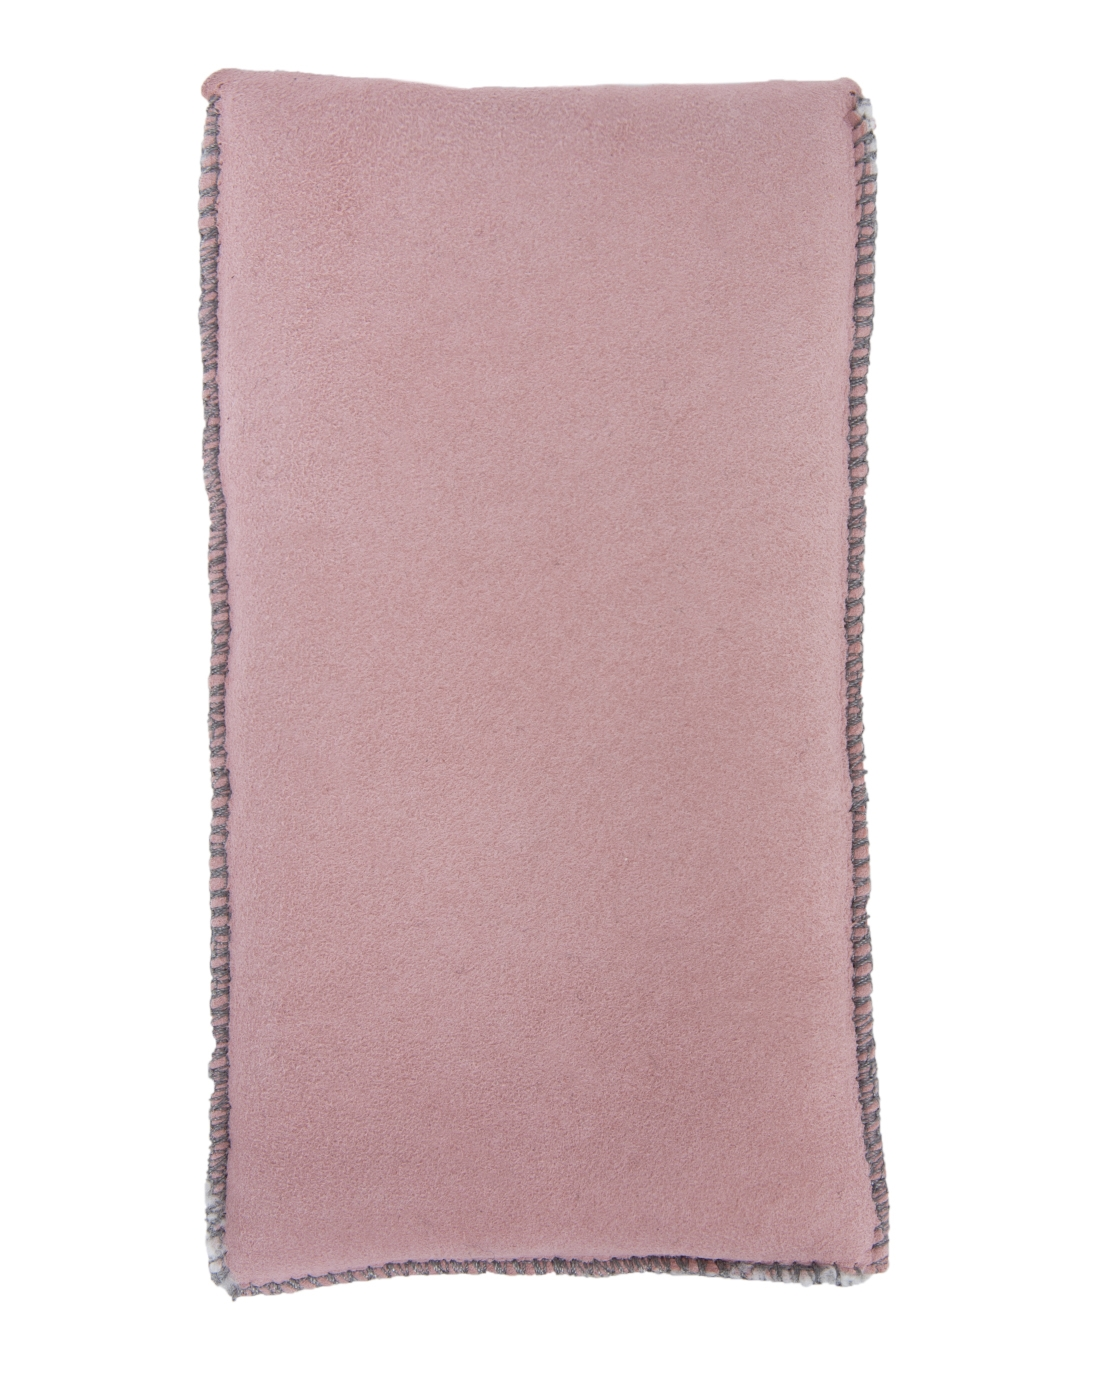 sheepskin glasses case_pink_back.jpg